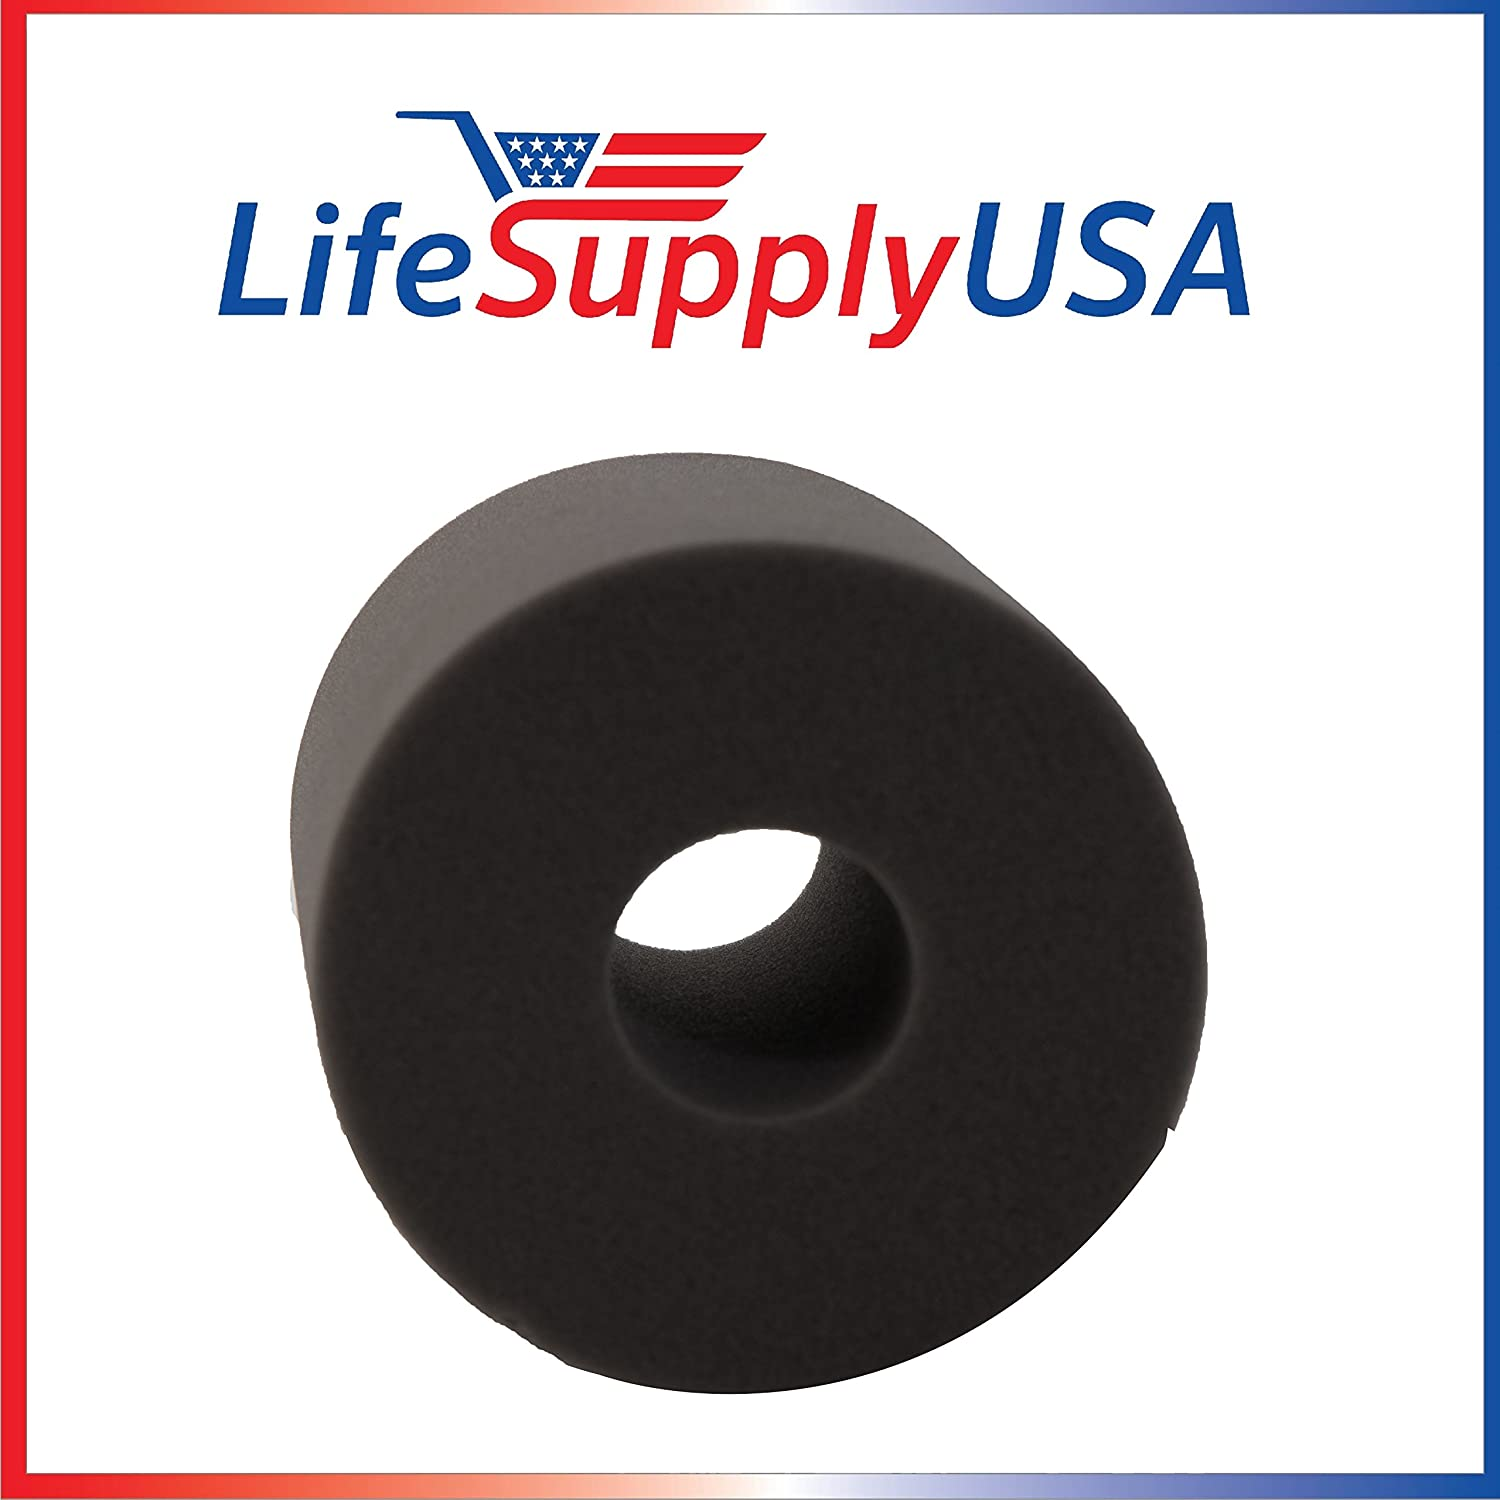 LifeSupplyUSA 2 Pack 6 x 6 inch Central Vacuum Foam Filter fits Electrolux Aerus Centralux Air Vac Hayden Vent-A-Vac M & S Broan and others by Life SupplyUSA